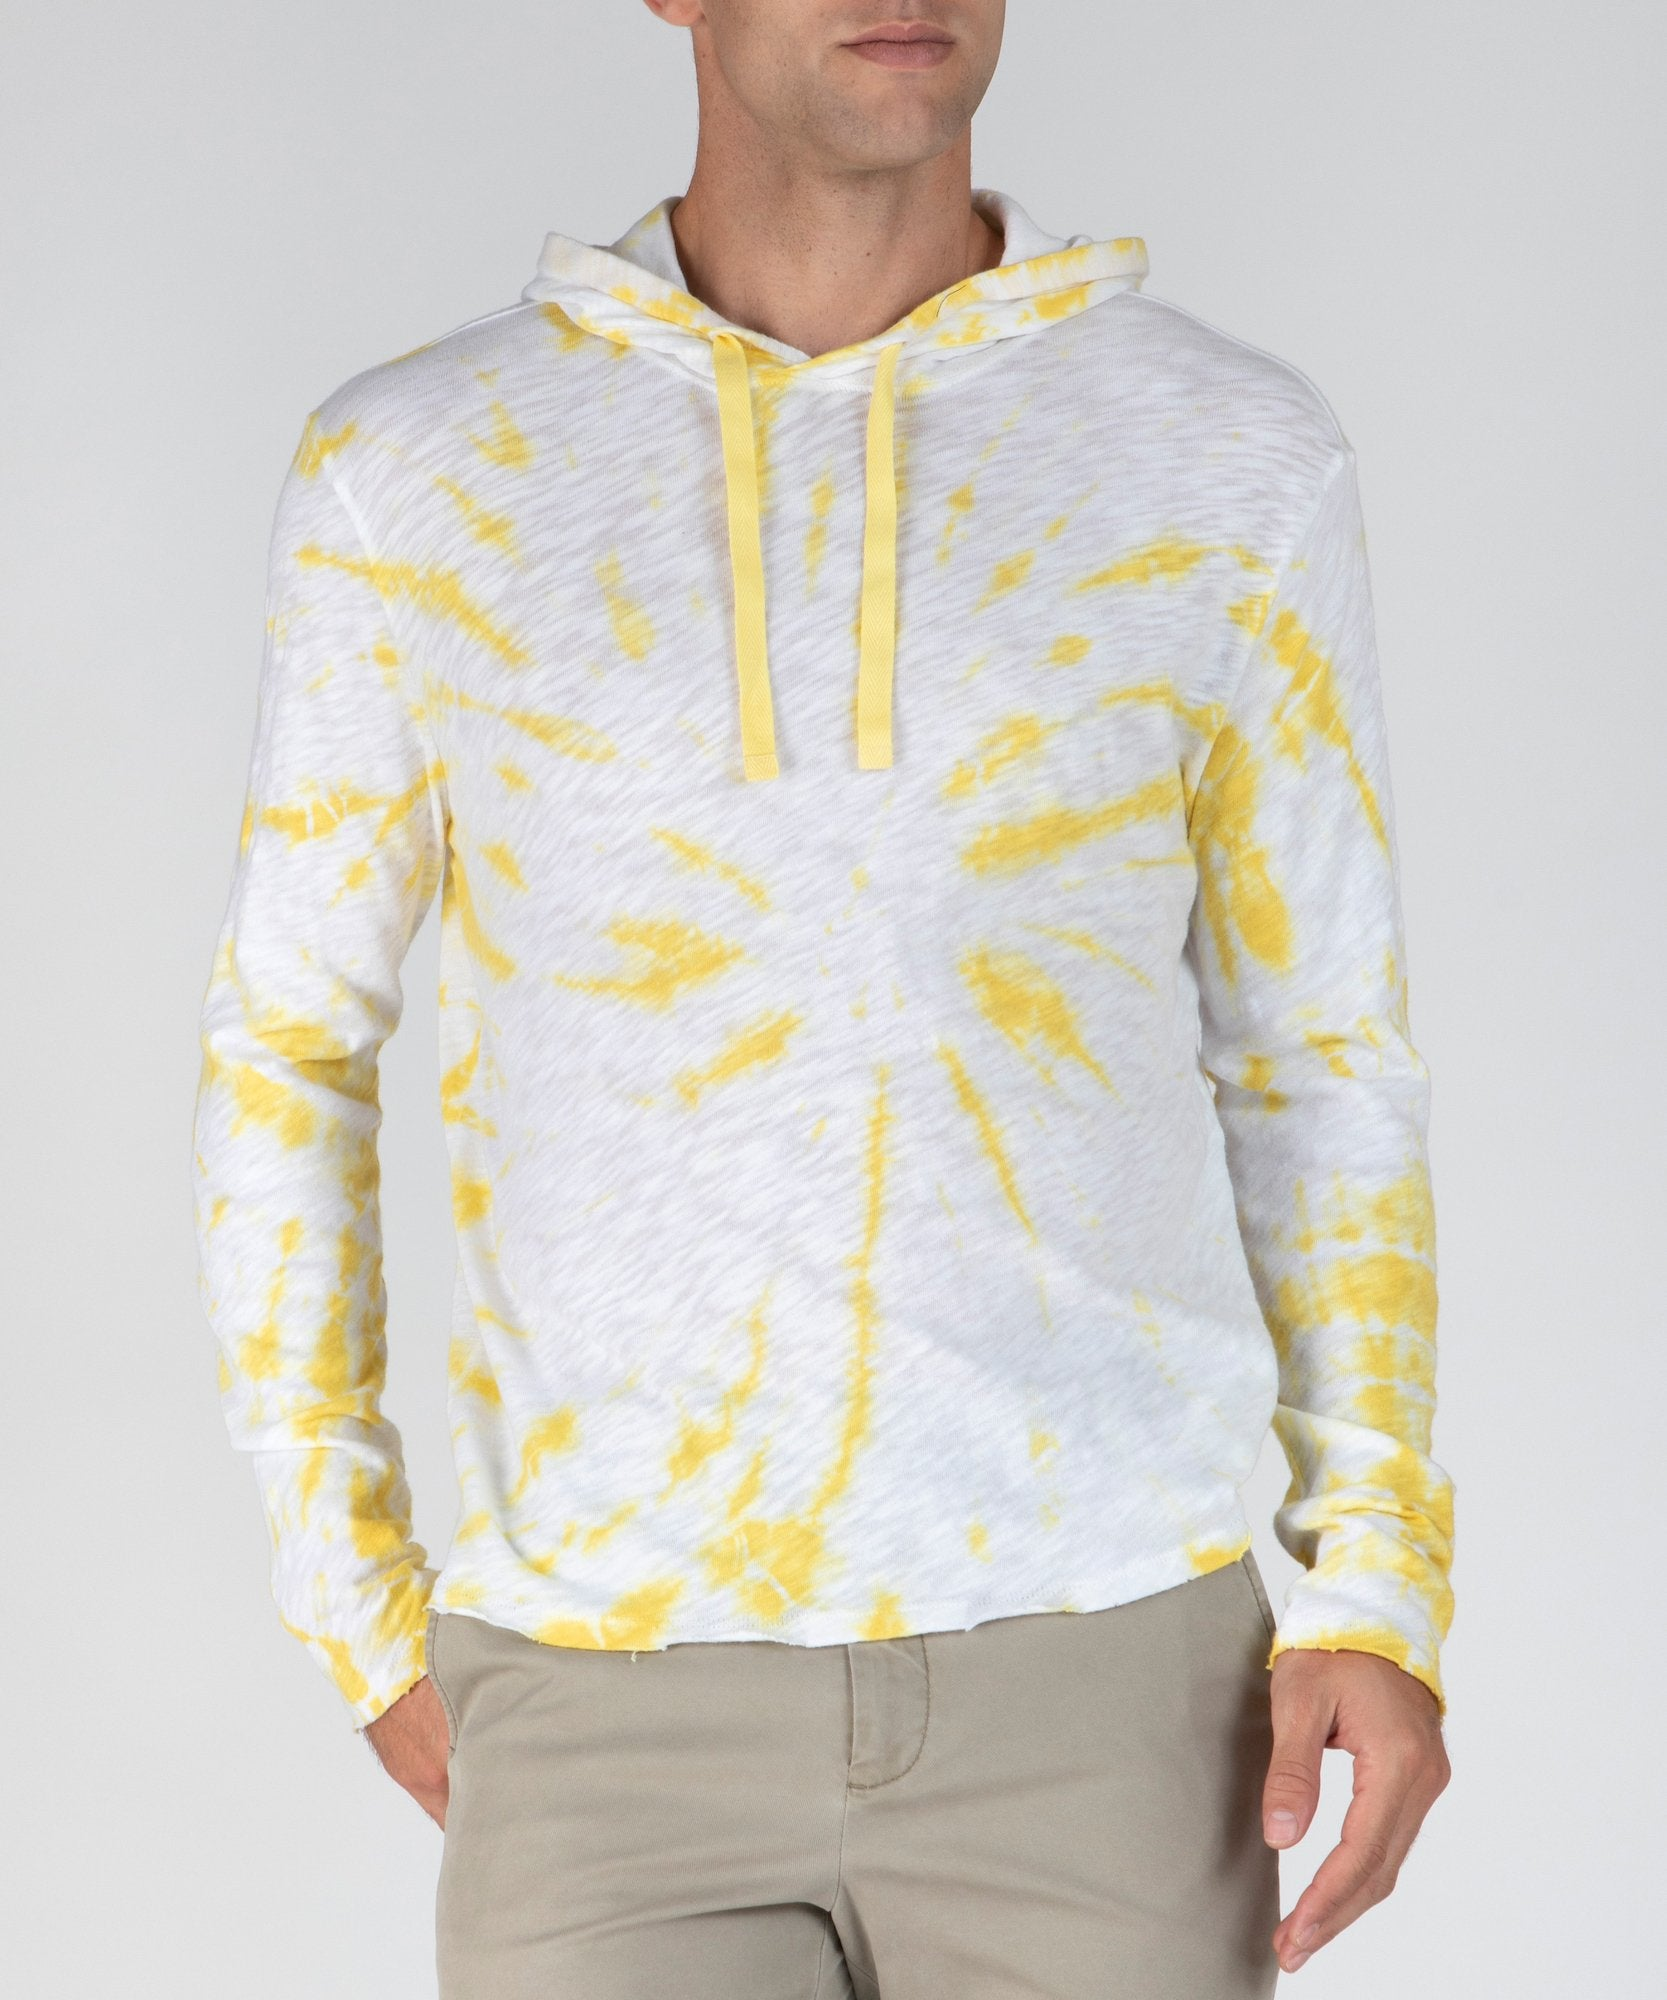 Canary Tie Dye Slub Jersey Hoodie - Men's Cotton Long Sleeve Pullover by ATM Anthony Thomas Melillo